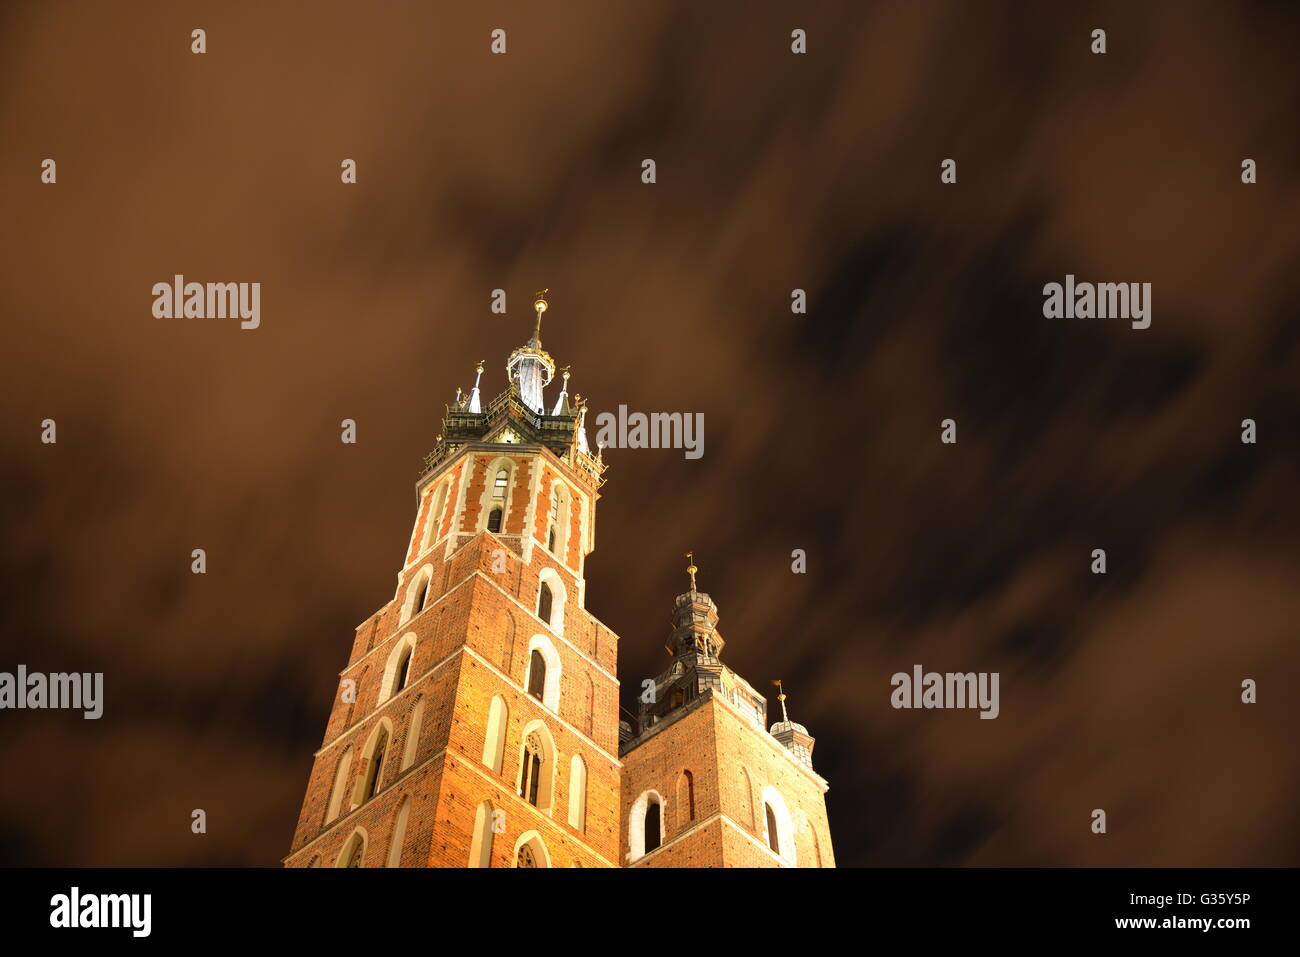 Krakow's famous St. Mary Basilica in Krakow at night (St. Mary's) Stock Photo